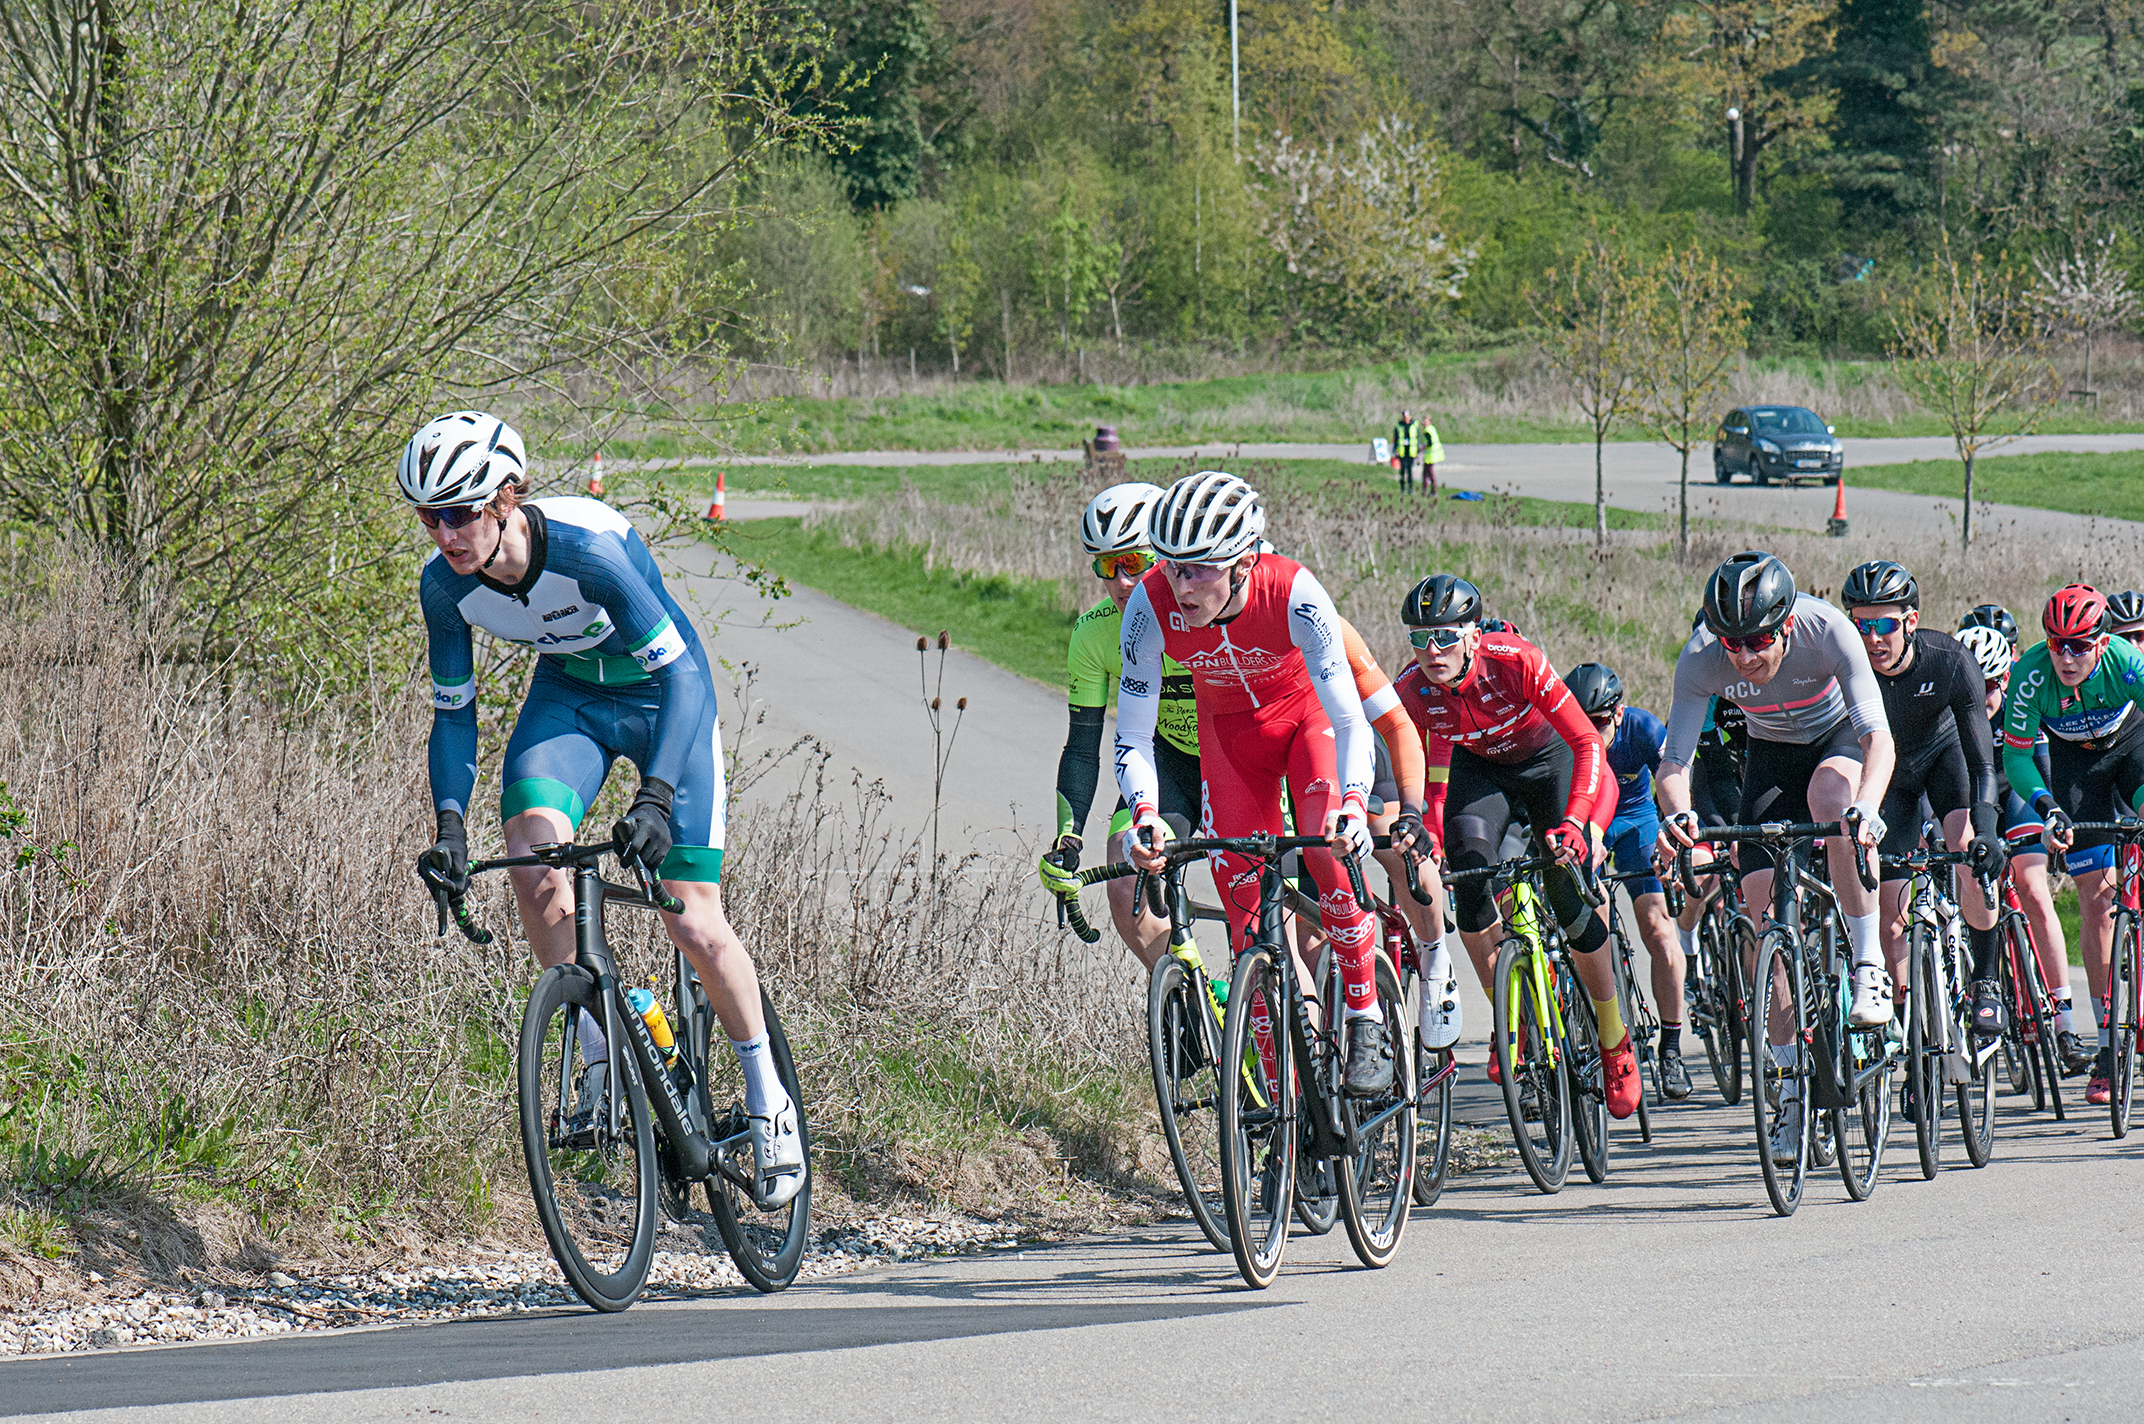 2019 Monument Spring crits 4 (5 of 25).JPG